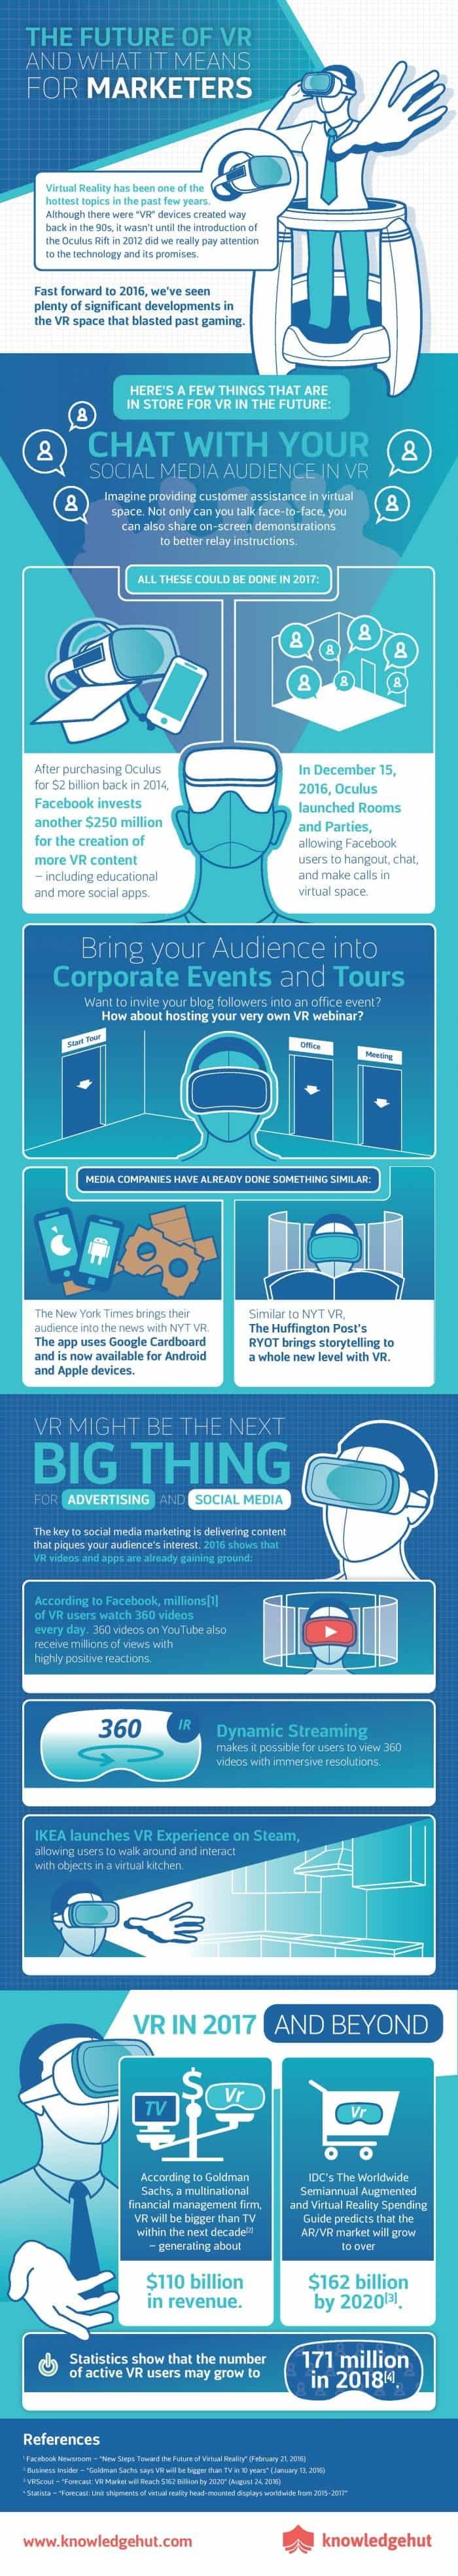 Infographic showing the probable future of VR and its possibilities.